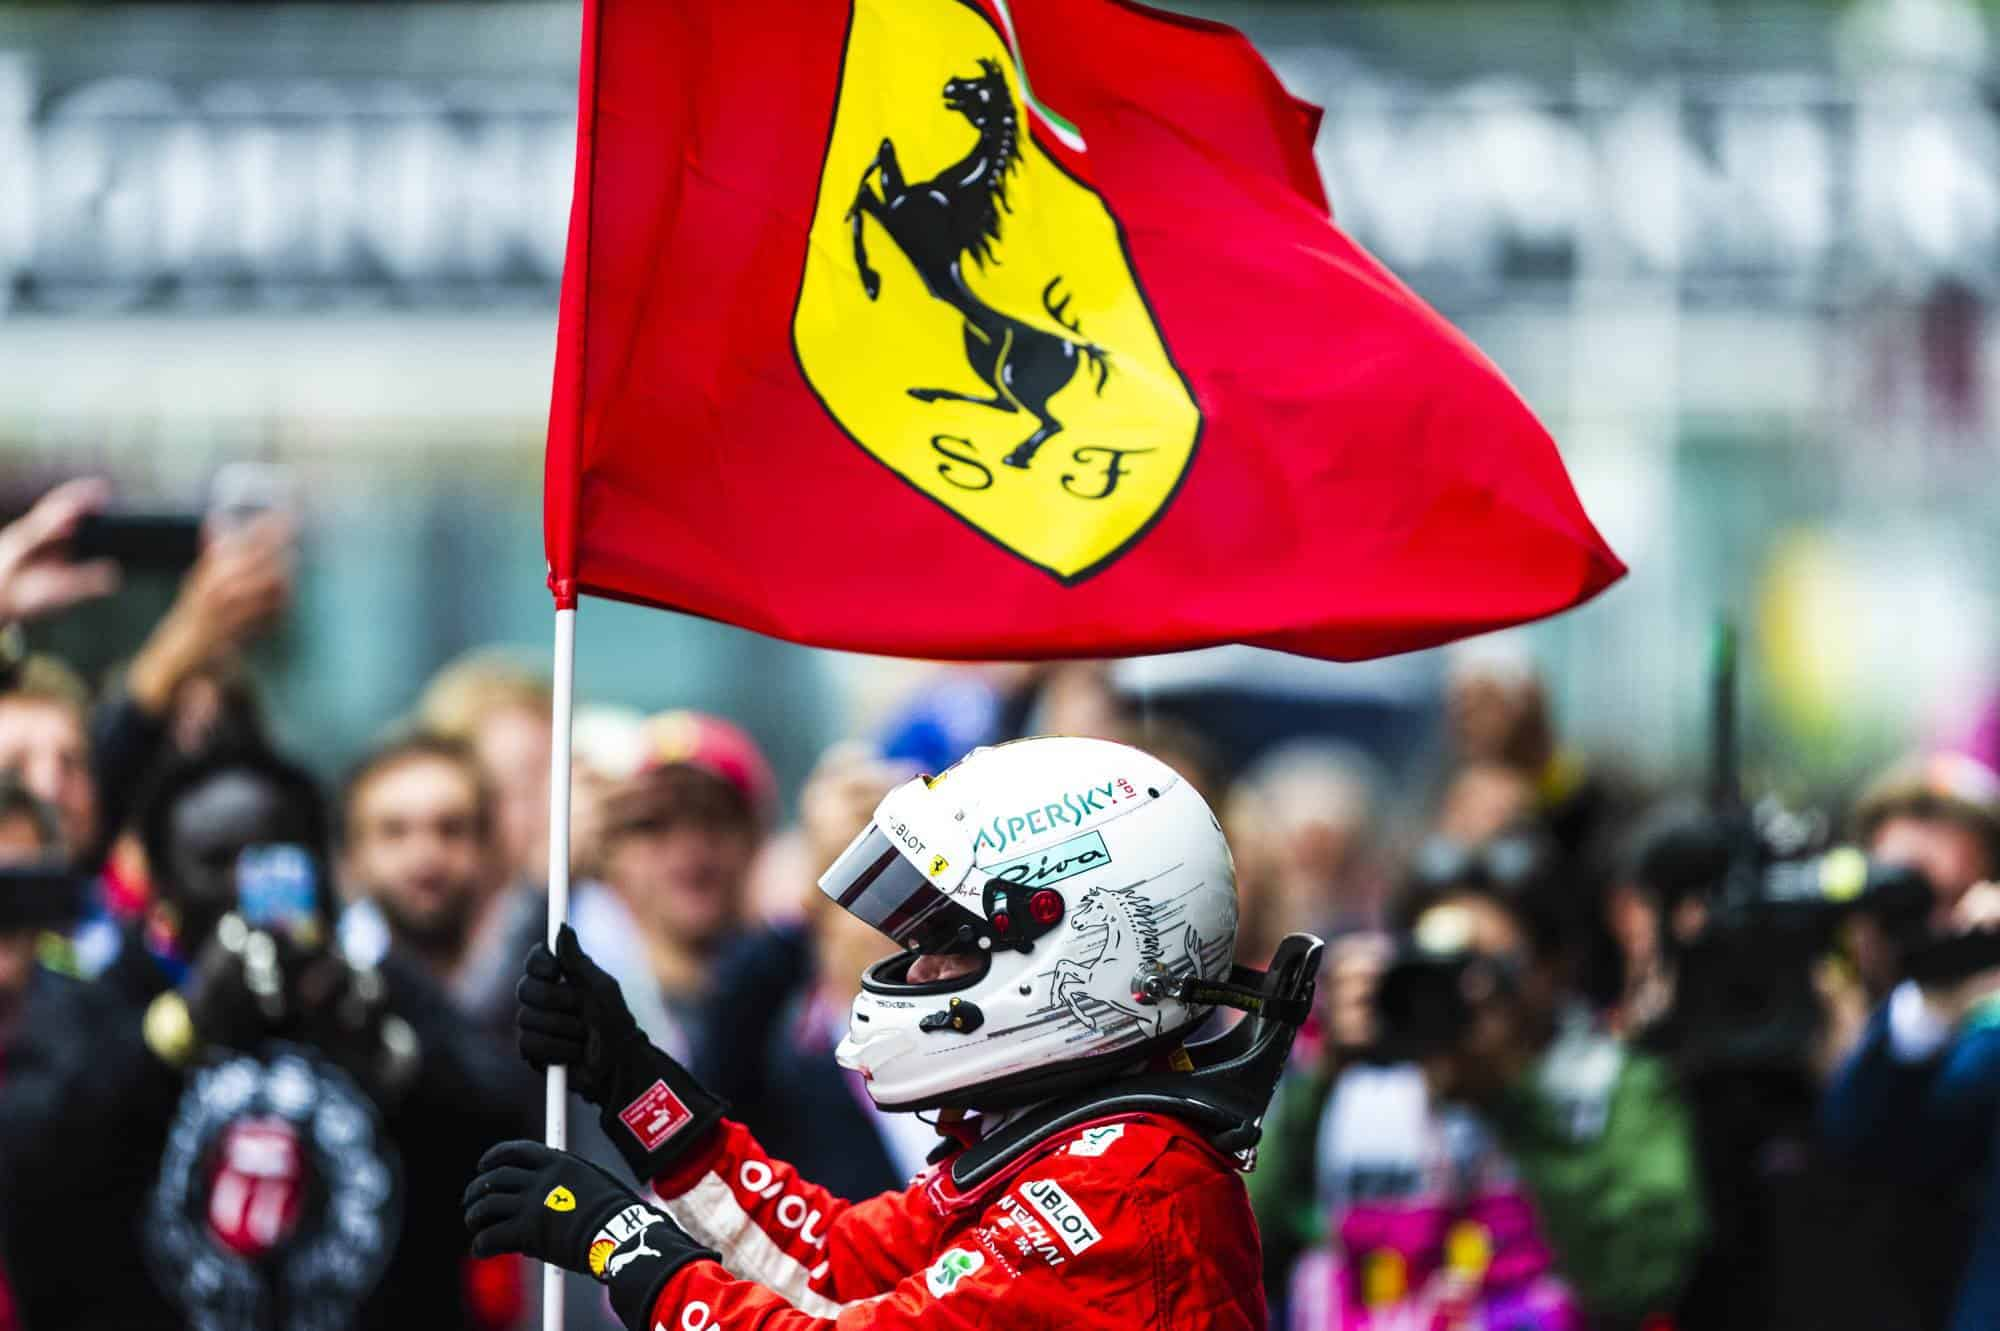 Belgian GP F1 2018 Vettel Ferrari flag after race Photo Ferrari